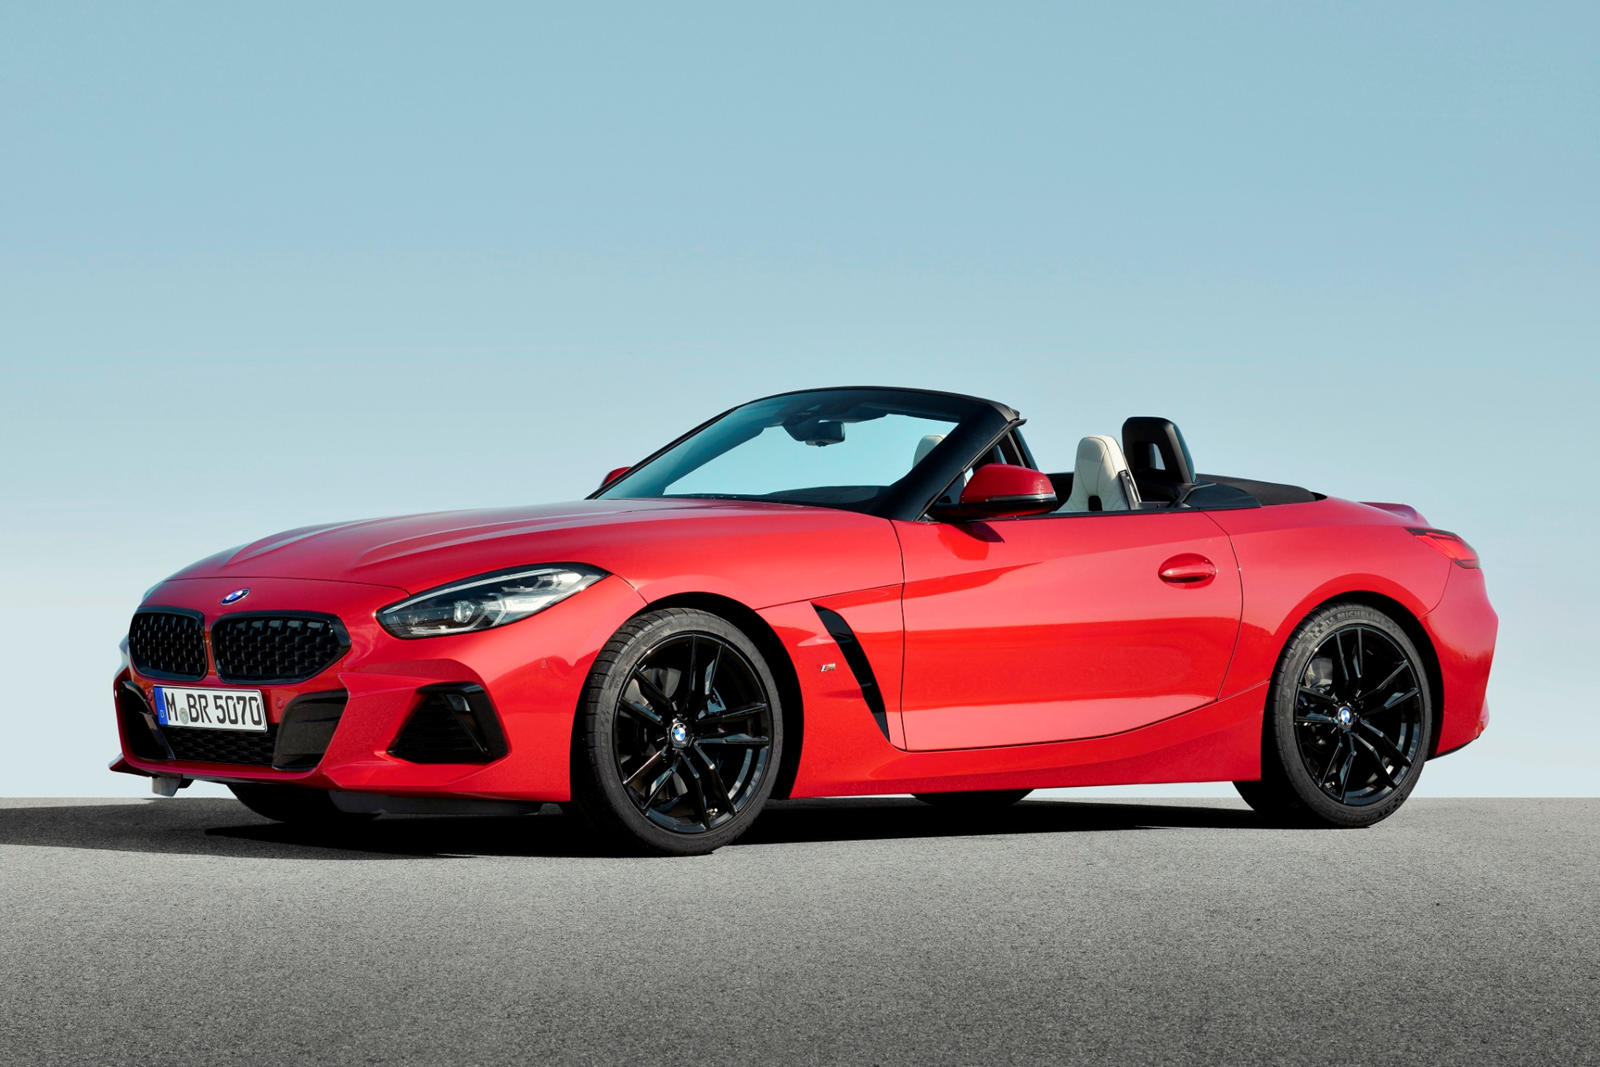 2020 Bmw Z4 Roadster Review Trims Specs Price New Interior Features Exterior Design And Specifications Carbuzz